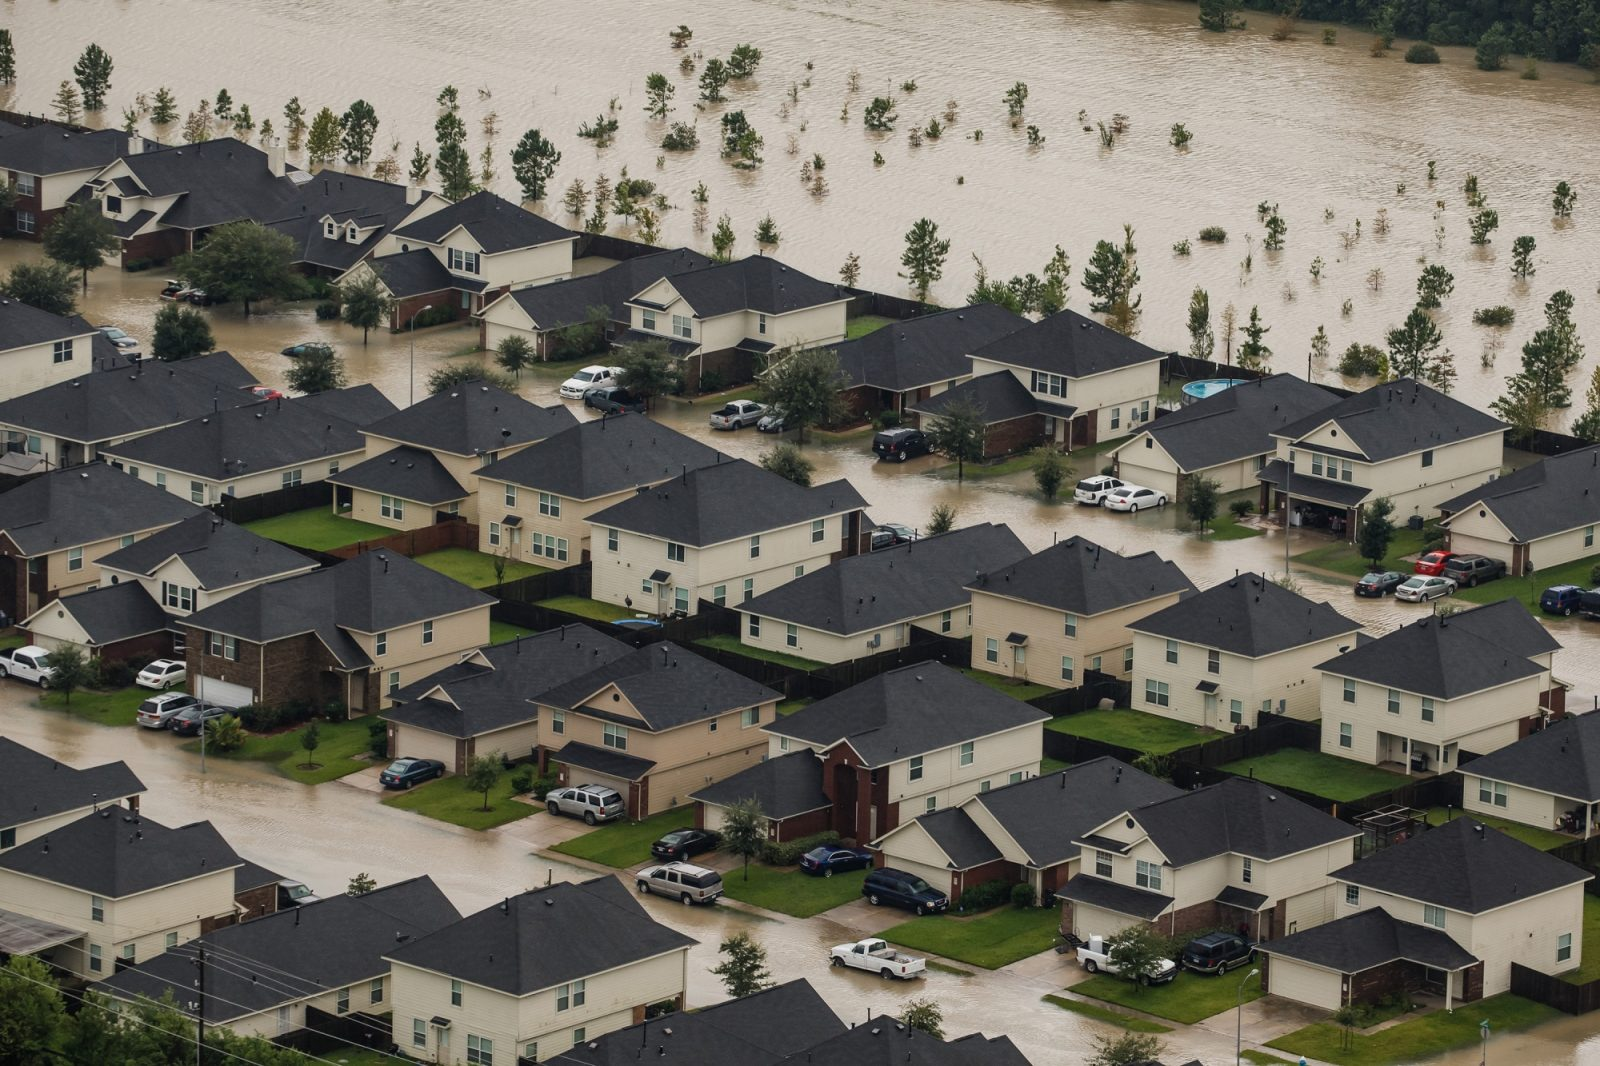 Residential neighborhoods in Houston, Texas near Interstate 10 sit in floodwater in the wake of Hurricane Harvey. (Marcus Yam/Los Angeles Times)